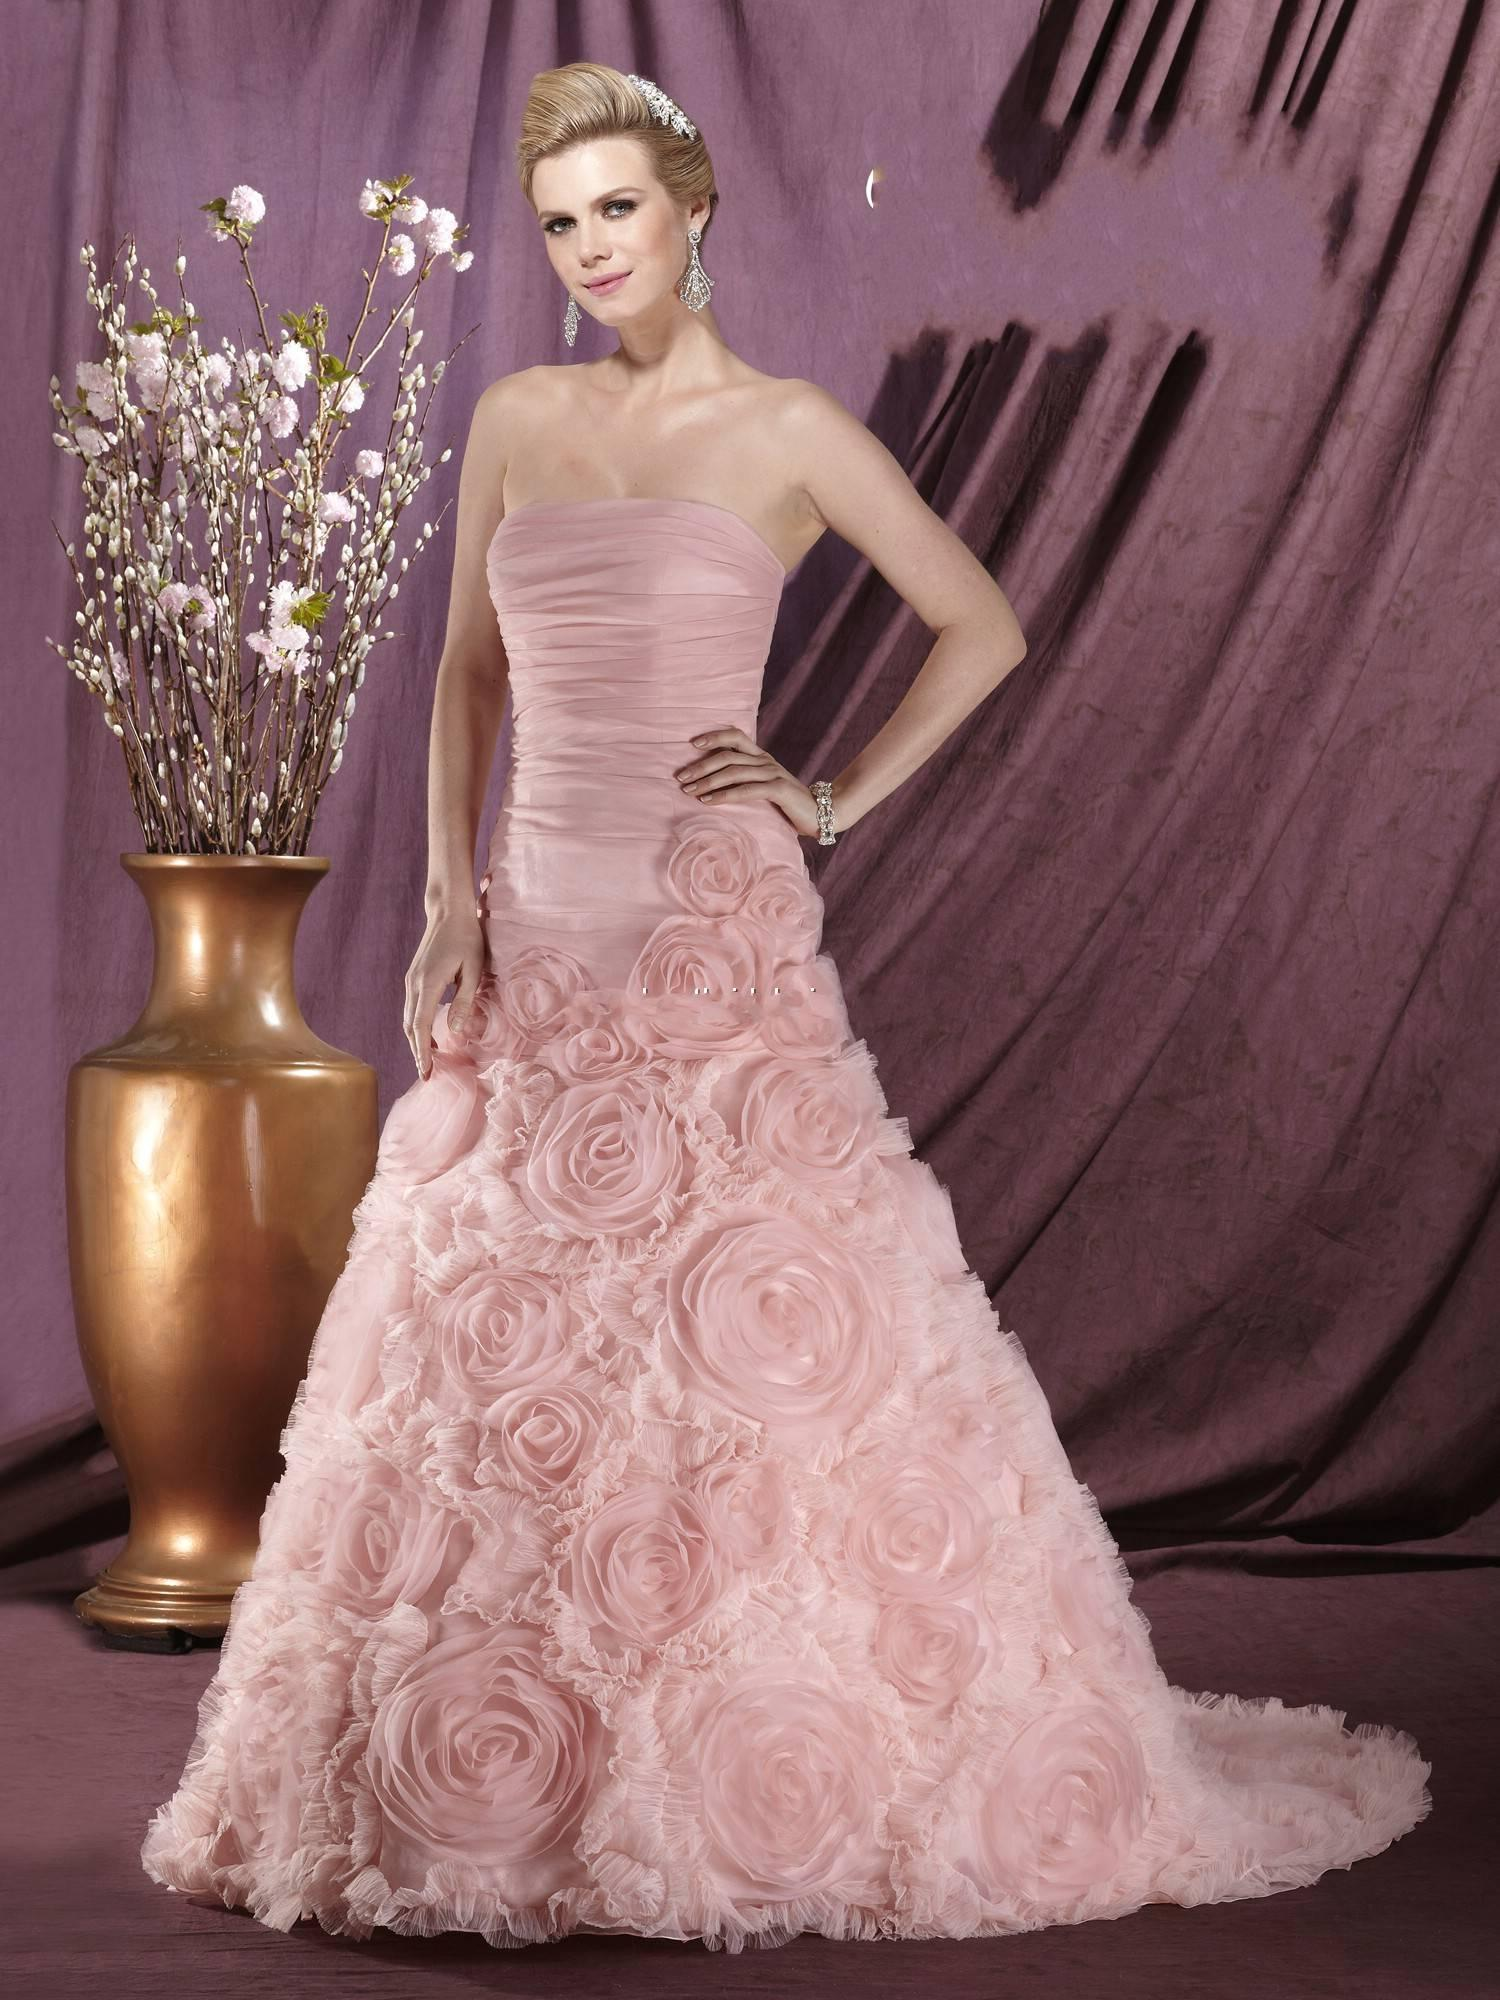 Rose Colored Wedding Dress Discount A Line Pink Dresses 2014 Strapless Organza Bridal 1161 By